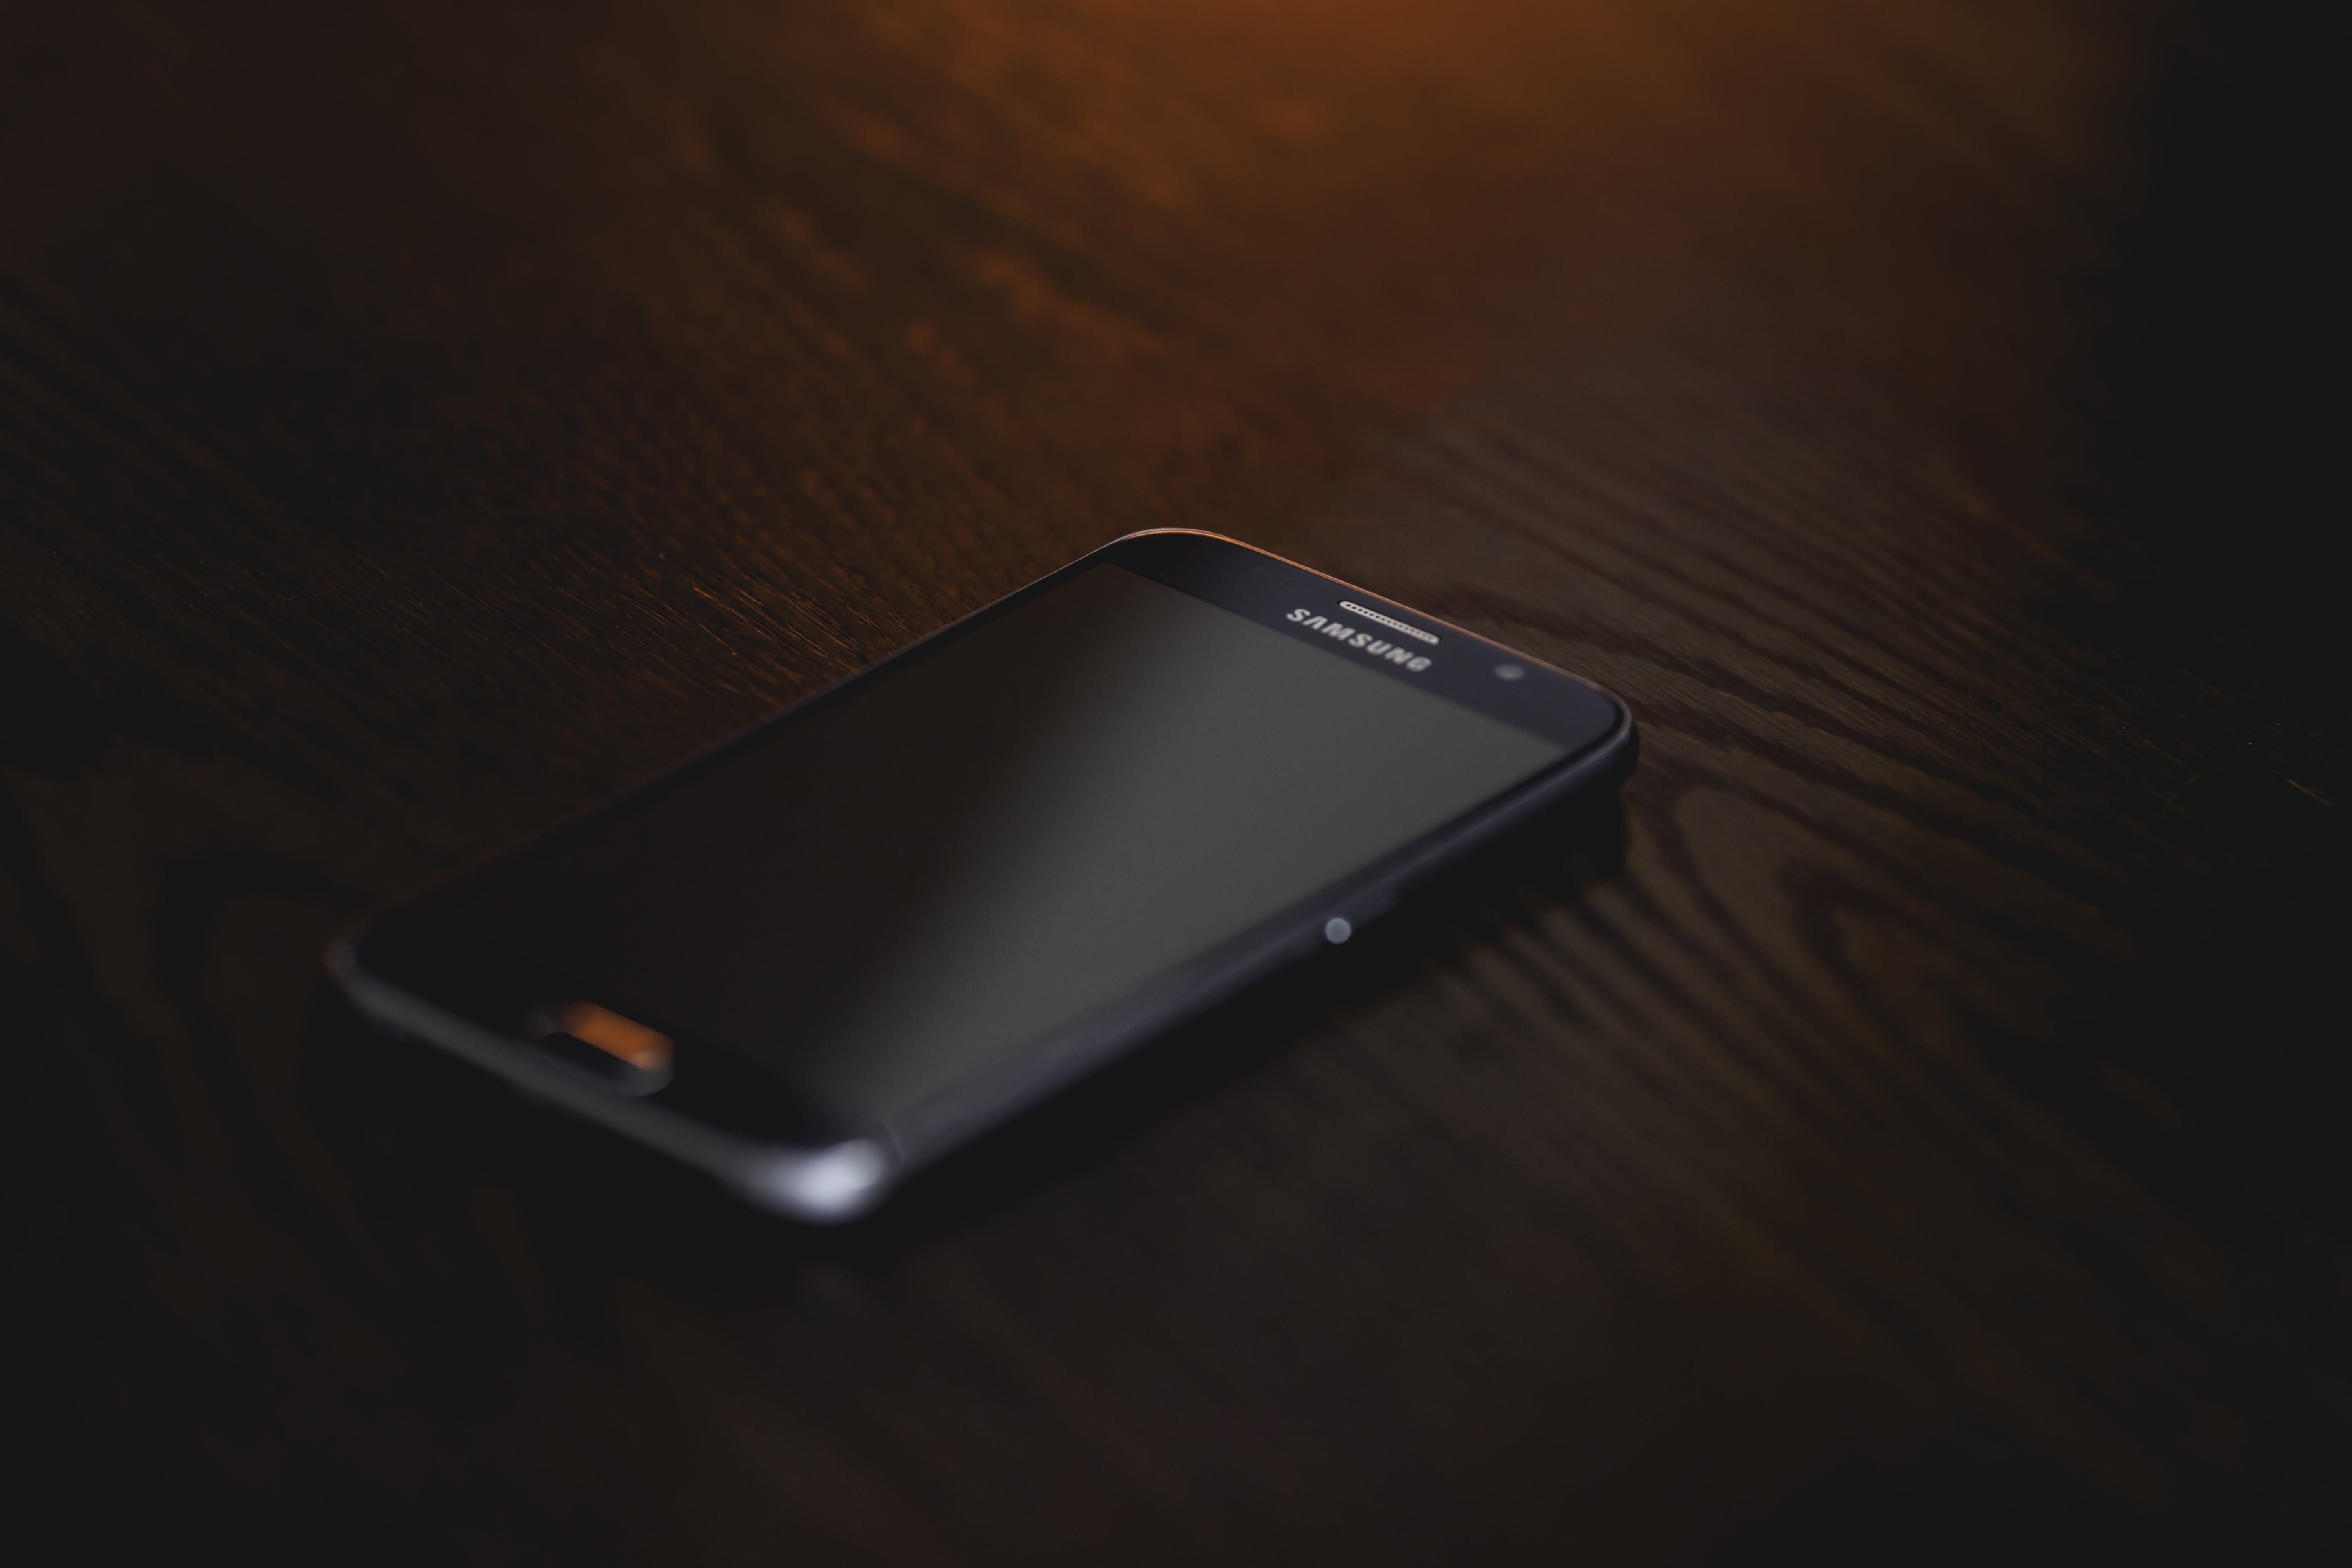 Black Samsung Smartphone at Brown Wooden Surface